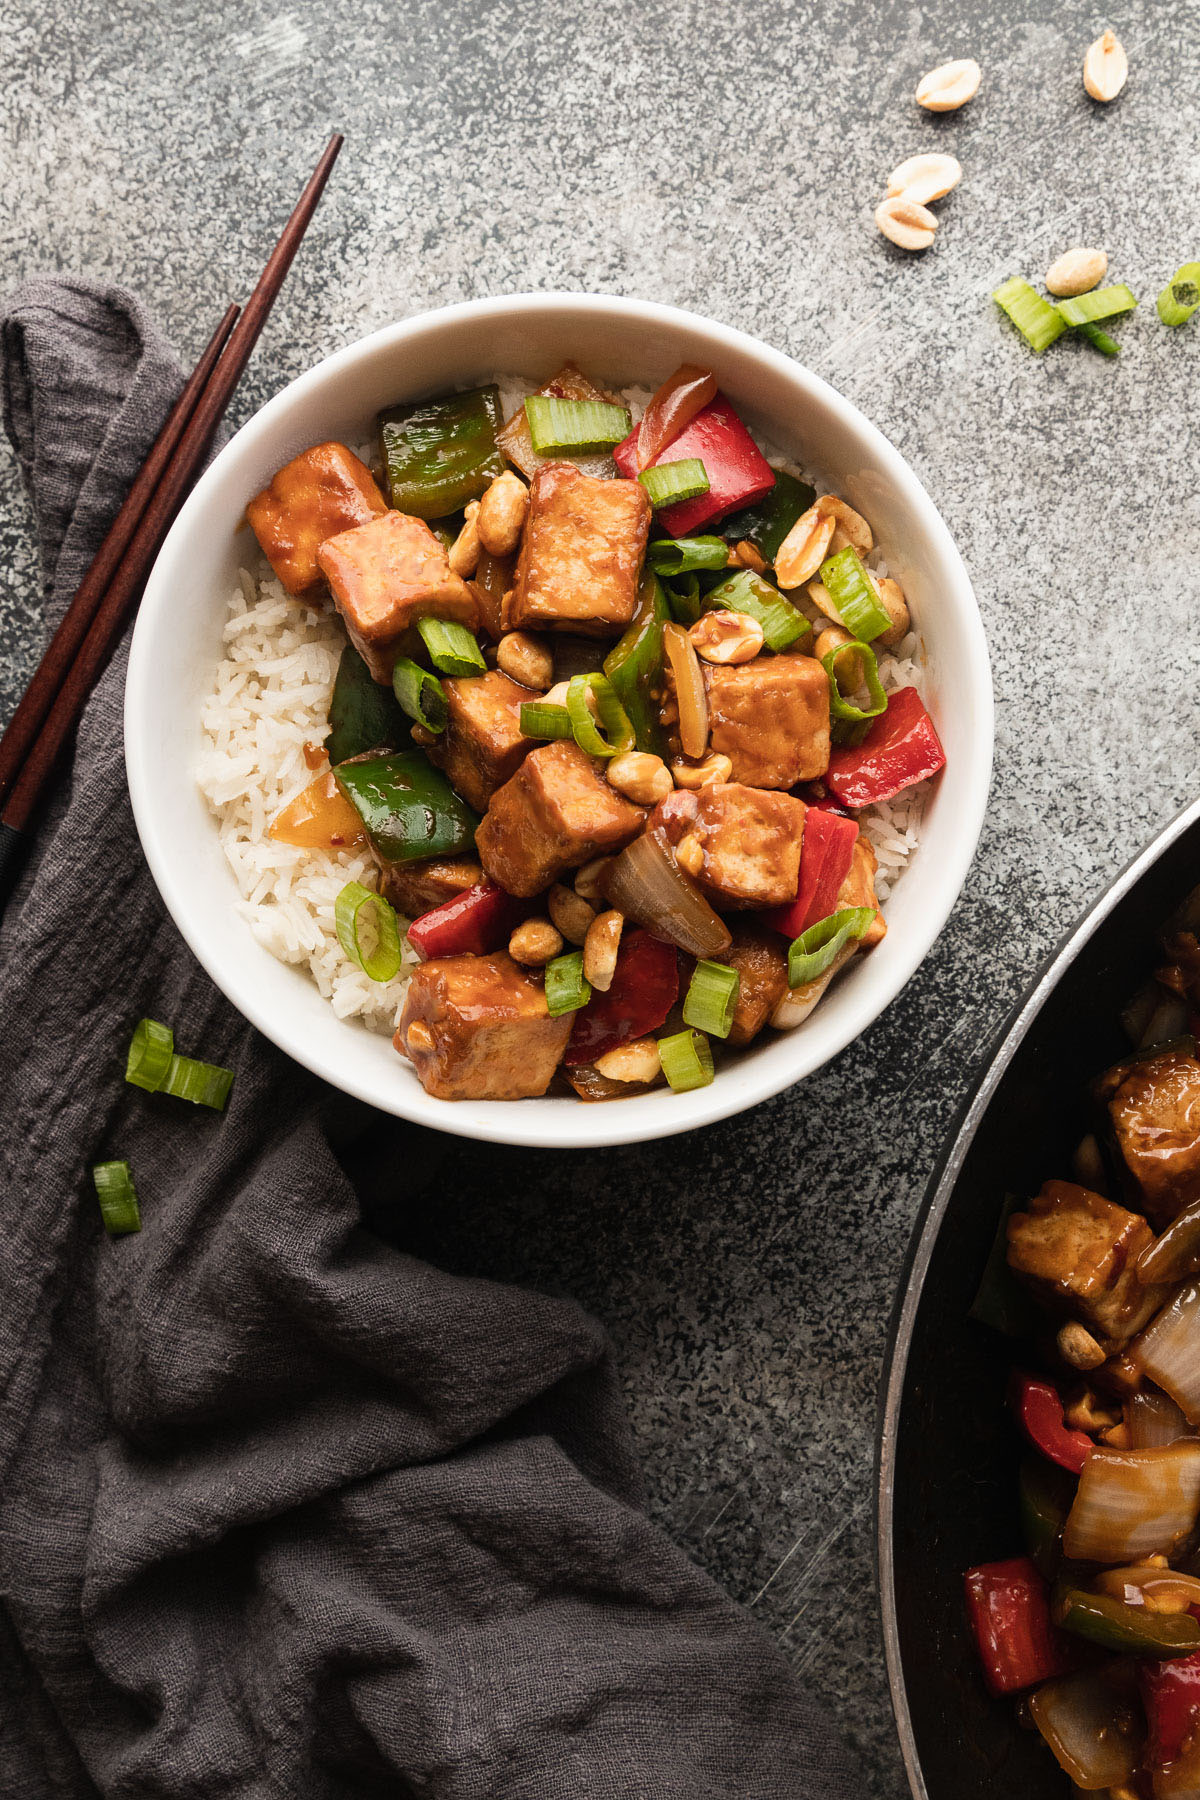 a white bowl filled with rice and kung pao tofu next to chopsticks and a dark grey napkin